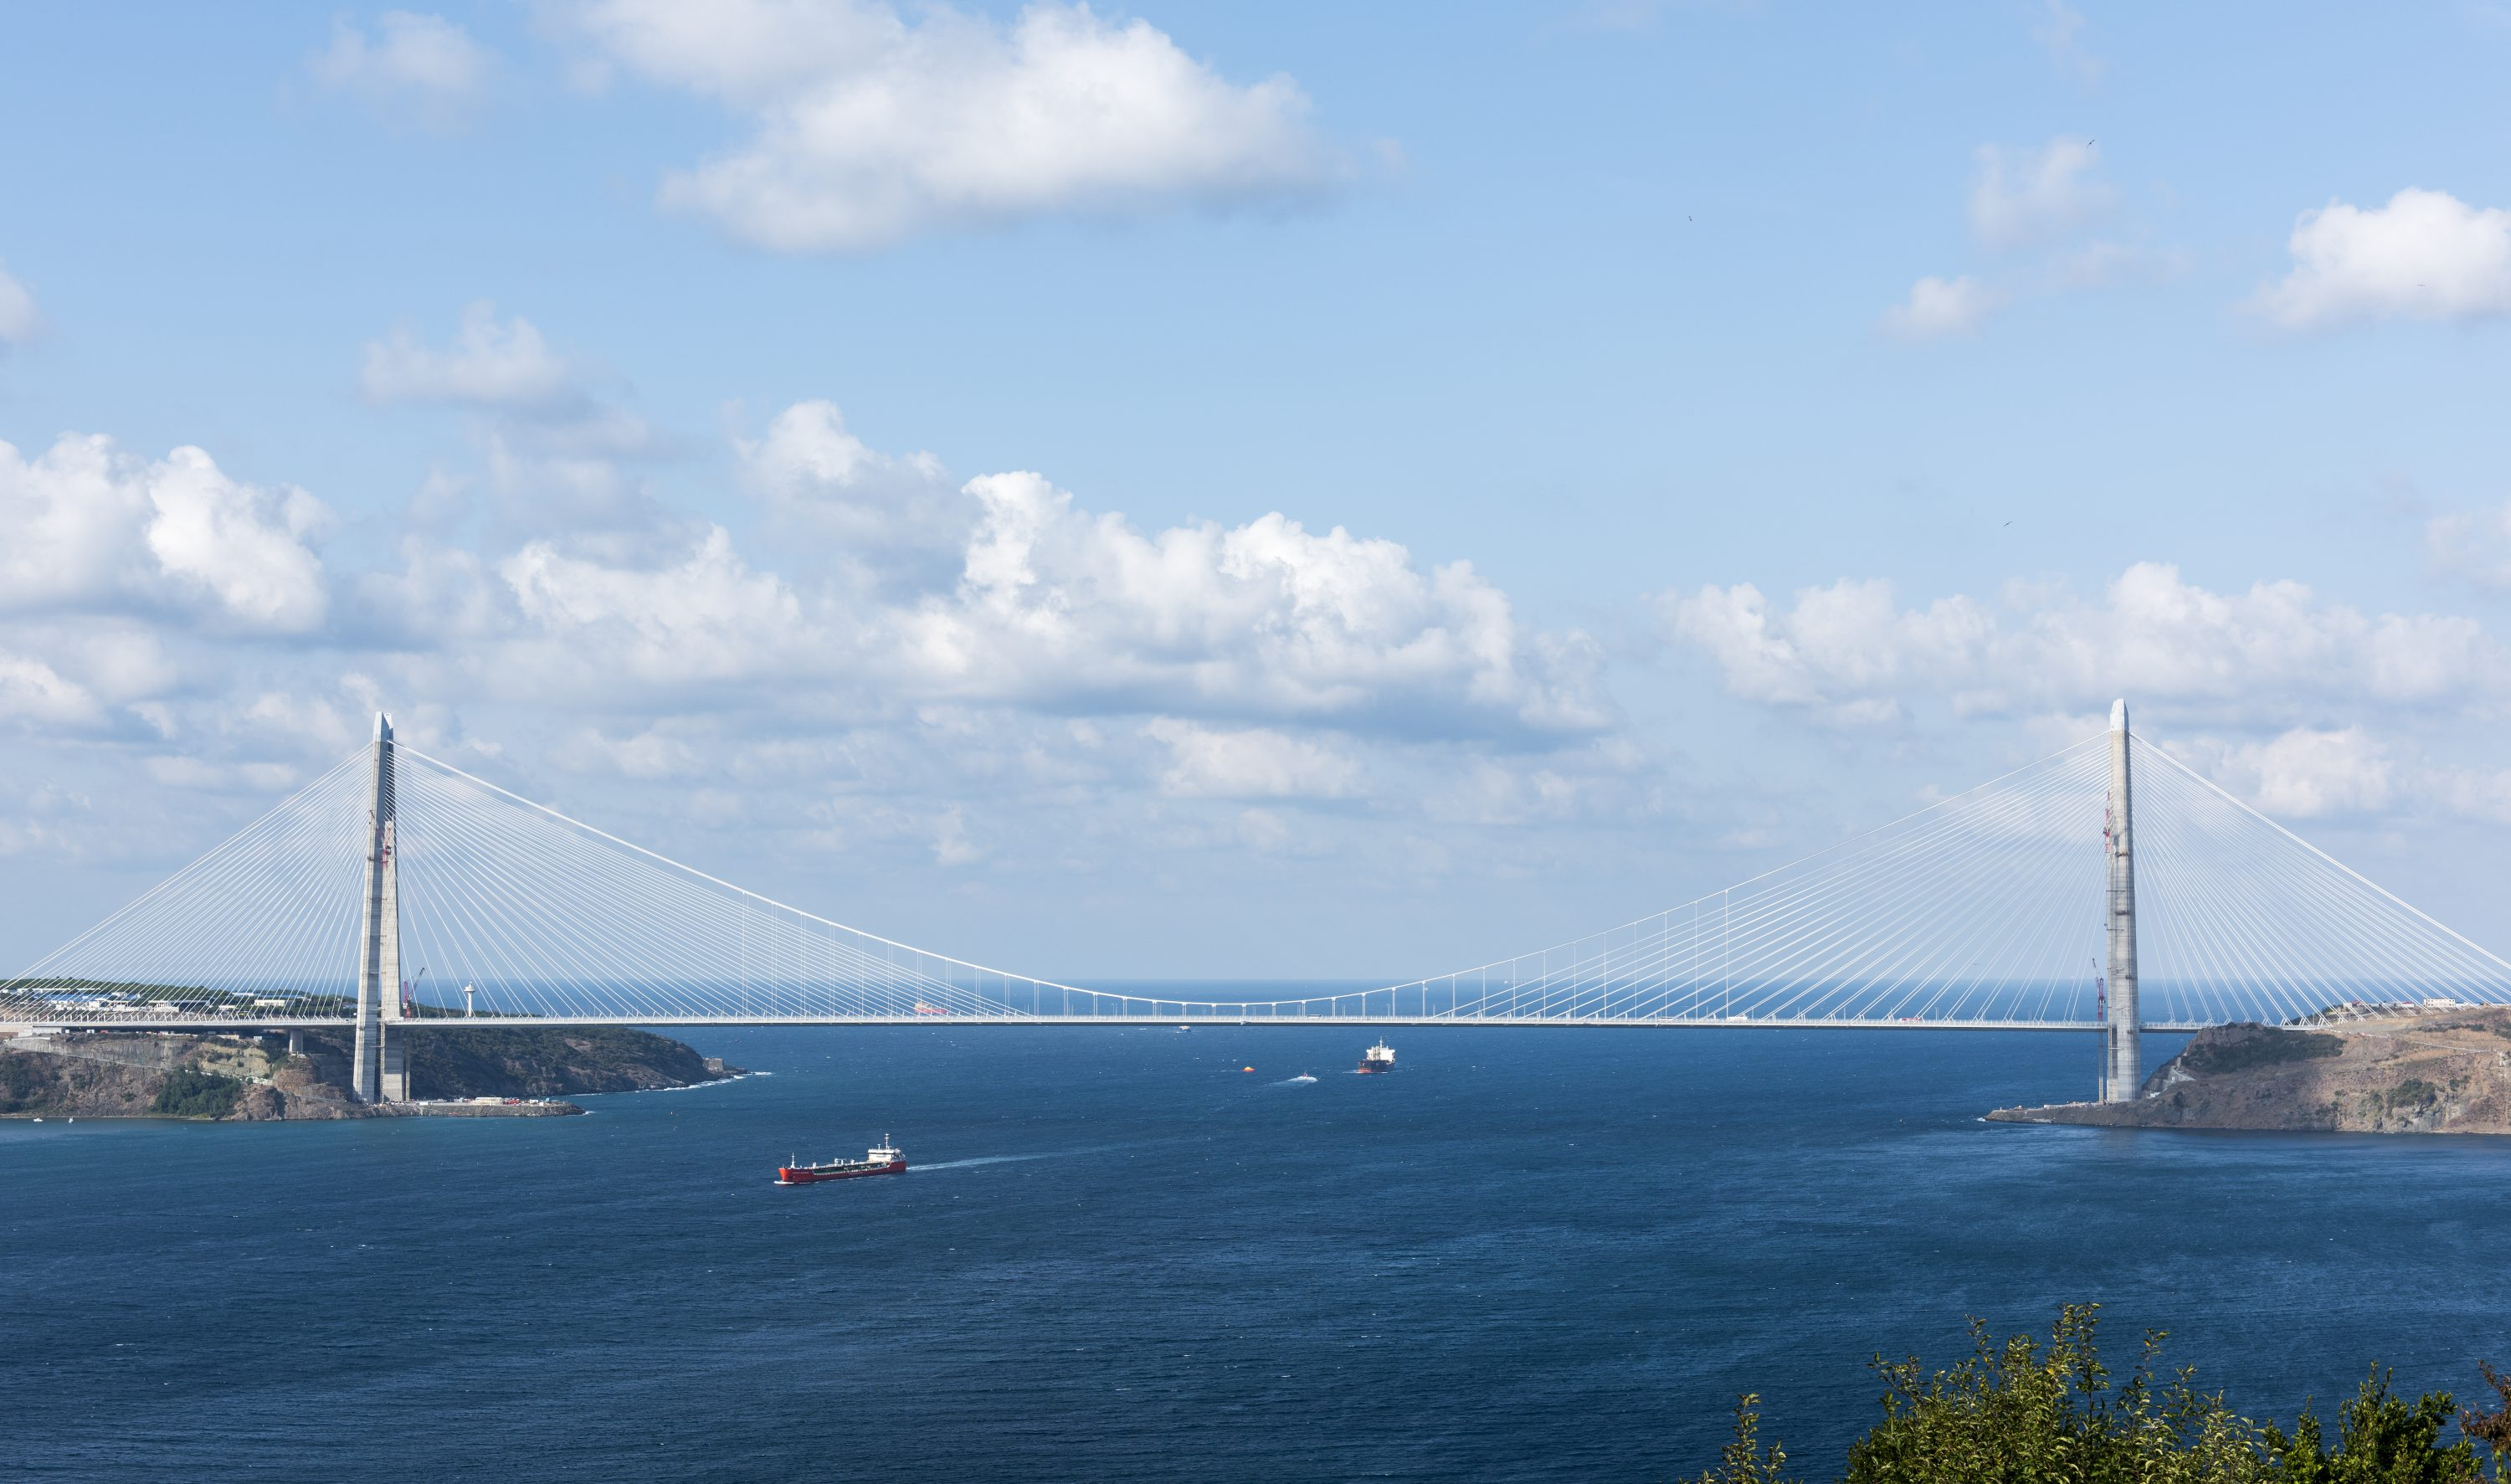 The third bridge across the Bosporus is being built north of Istanbul. With a span of more than 1,400 m, it will be the longest cable-stayed suspension bridge in the world. Munich Re is supporting this ambitious project as the leading reinsurer.